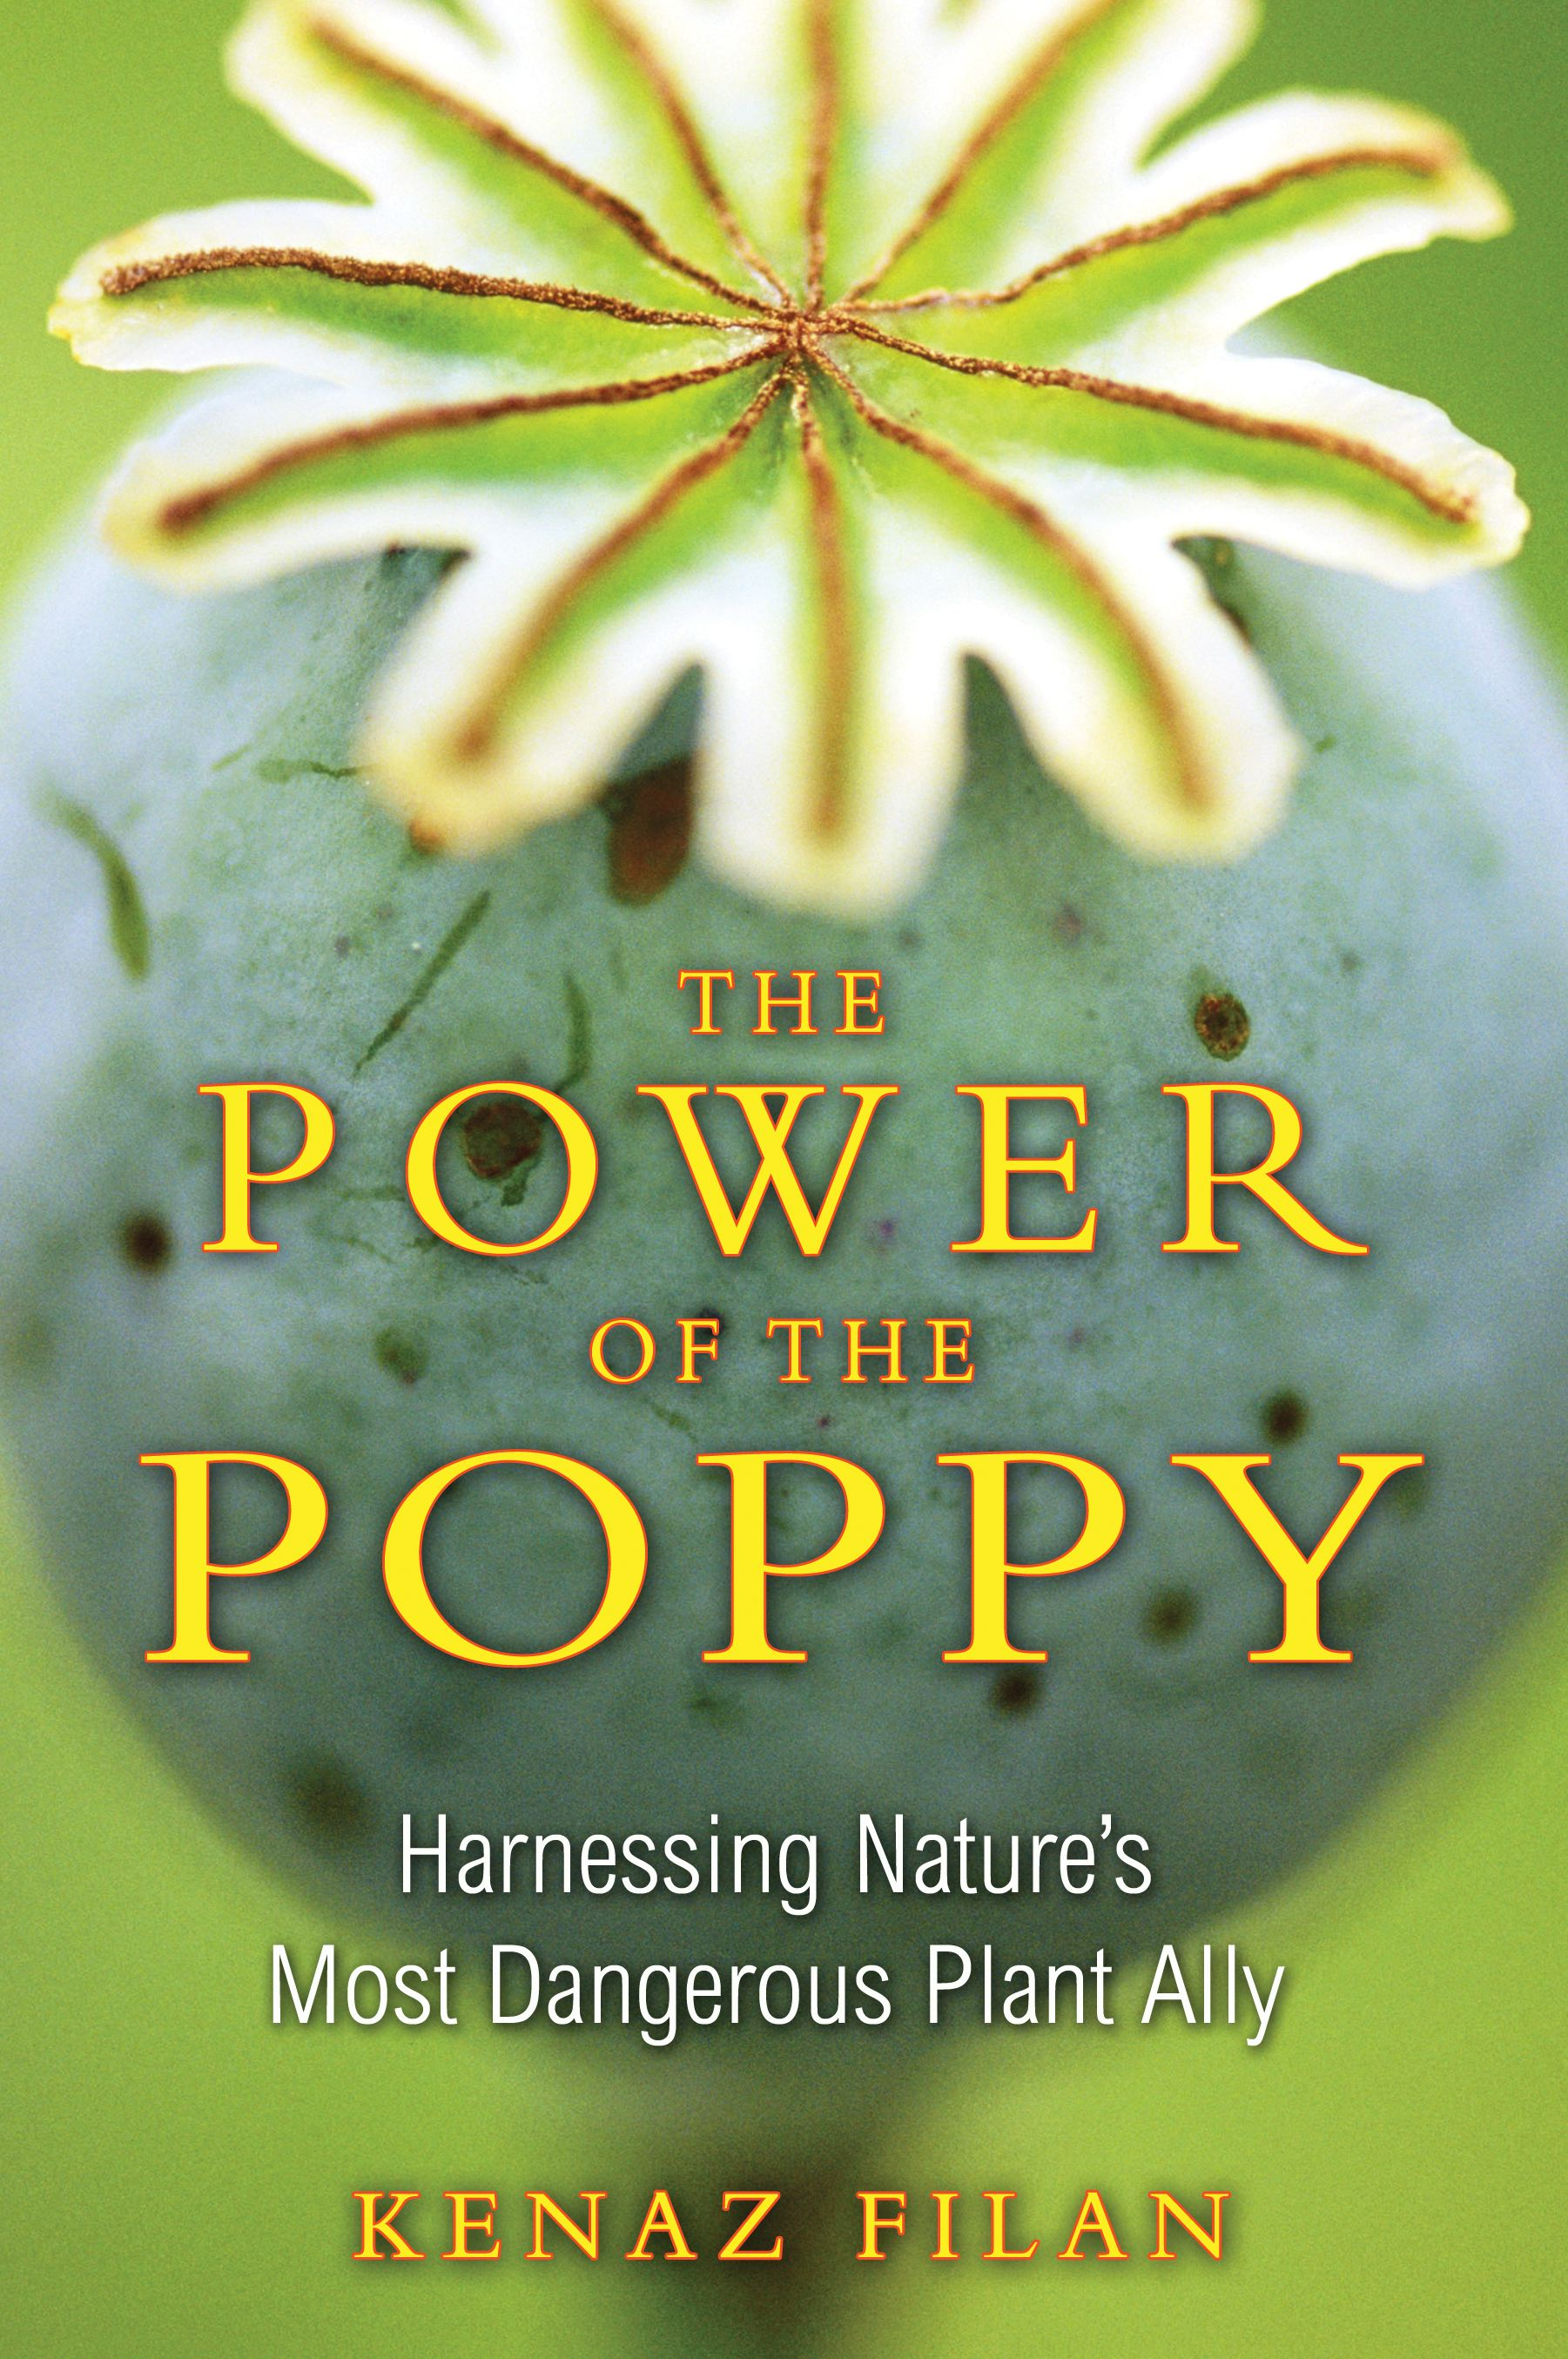 The-power-of-the-poppy-9781594773990_hr